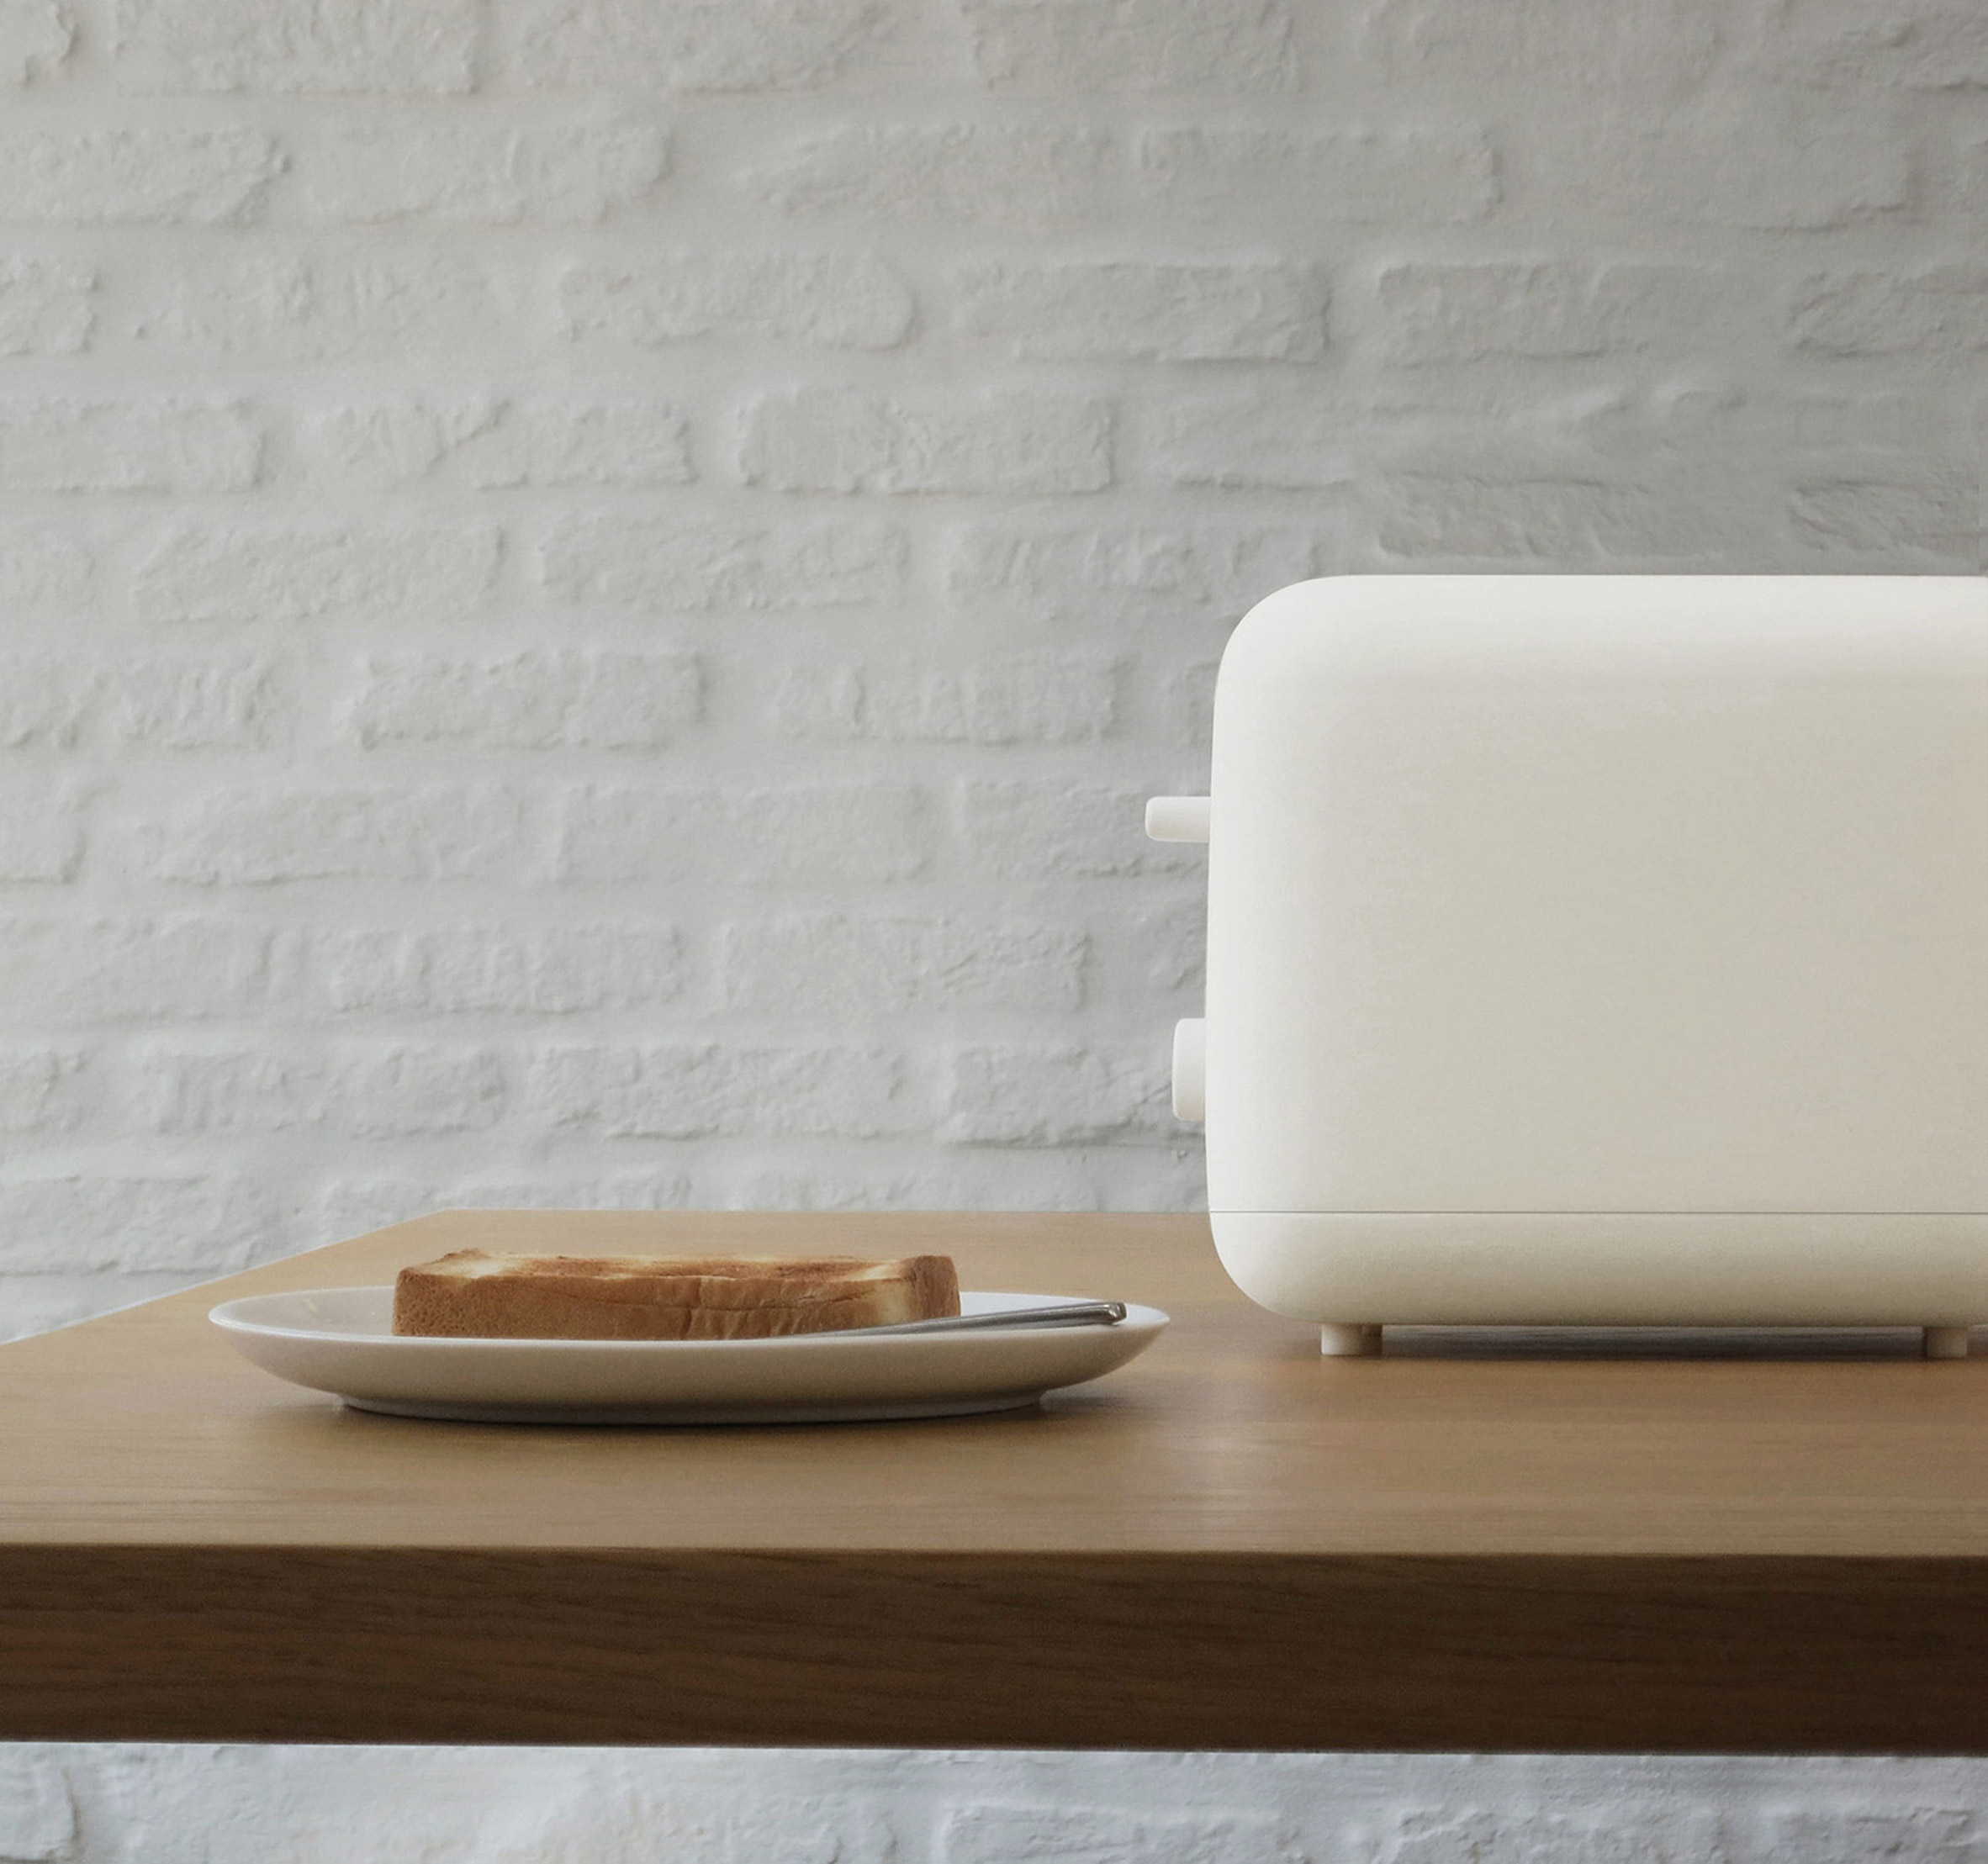 Competition: win a bundle of minimal Muji home appliances